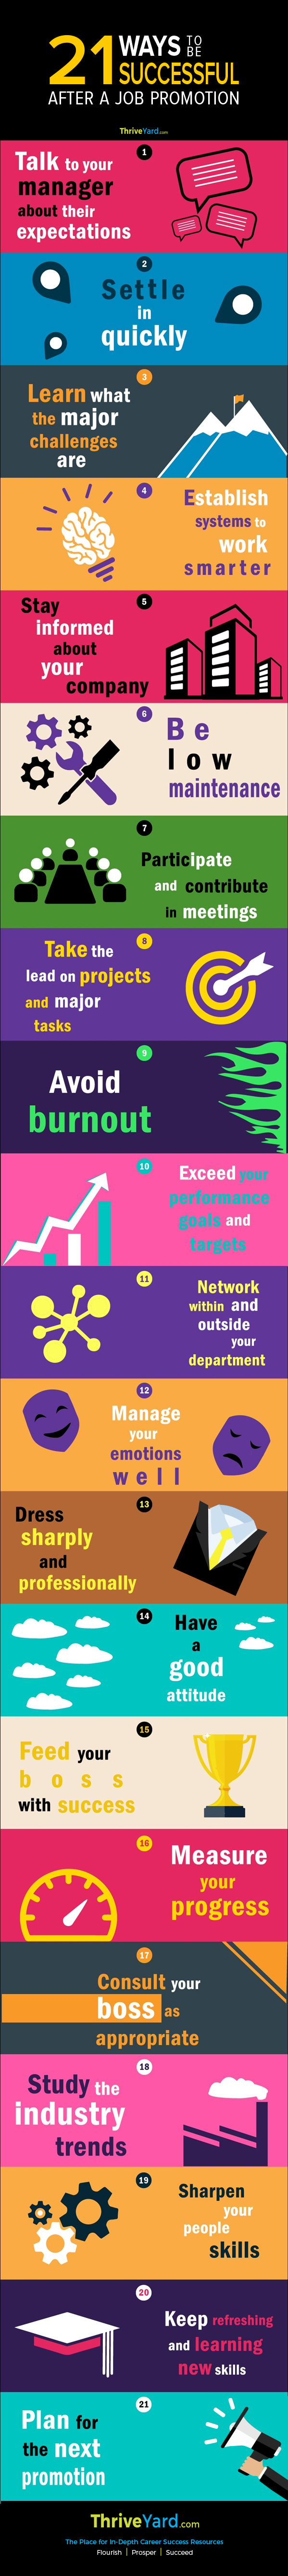 21 Ways to be Successful After a Job Promotion - Infographic